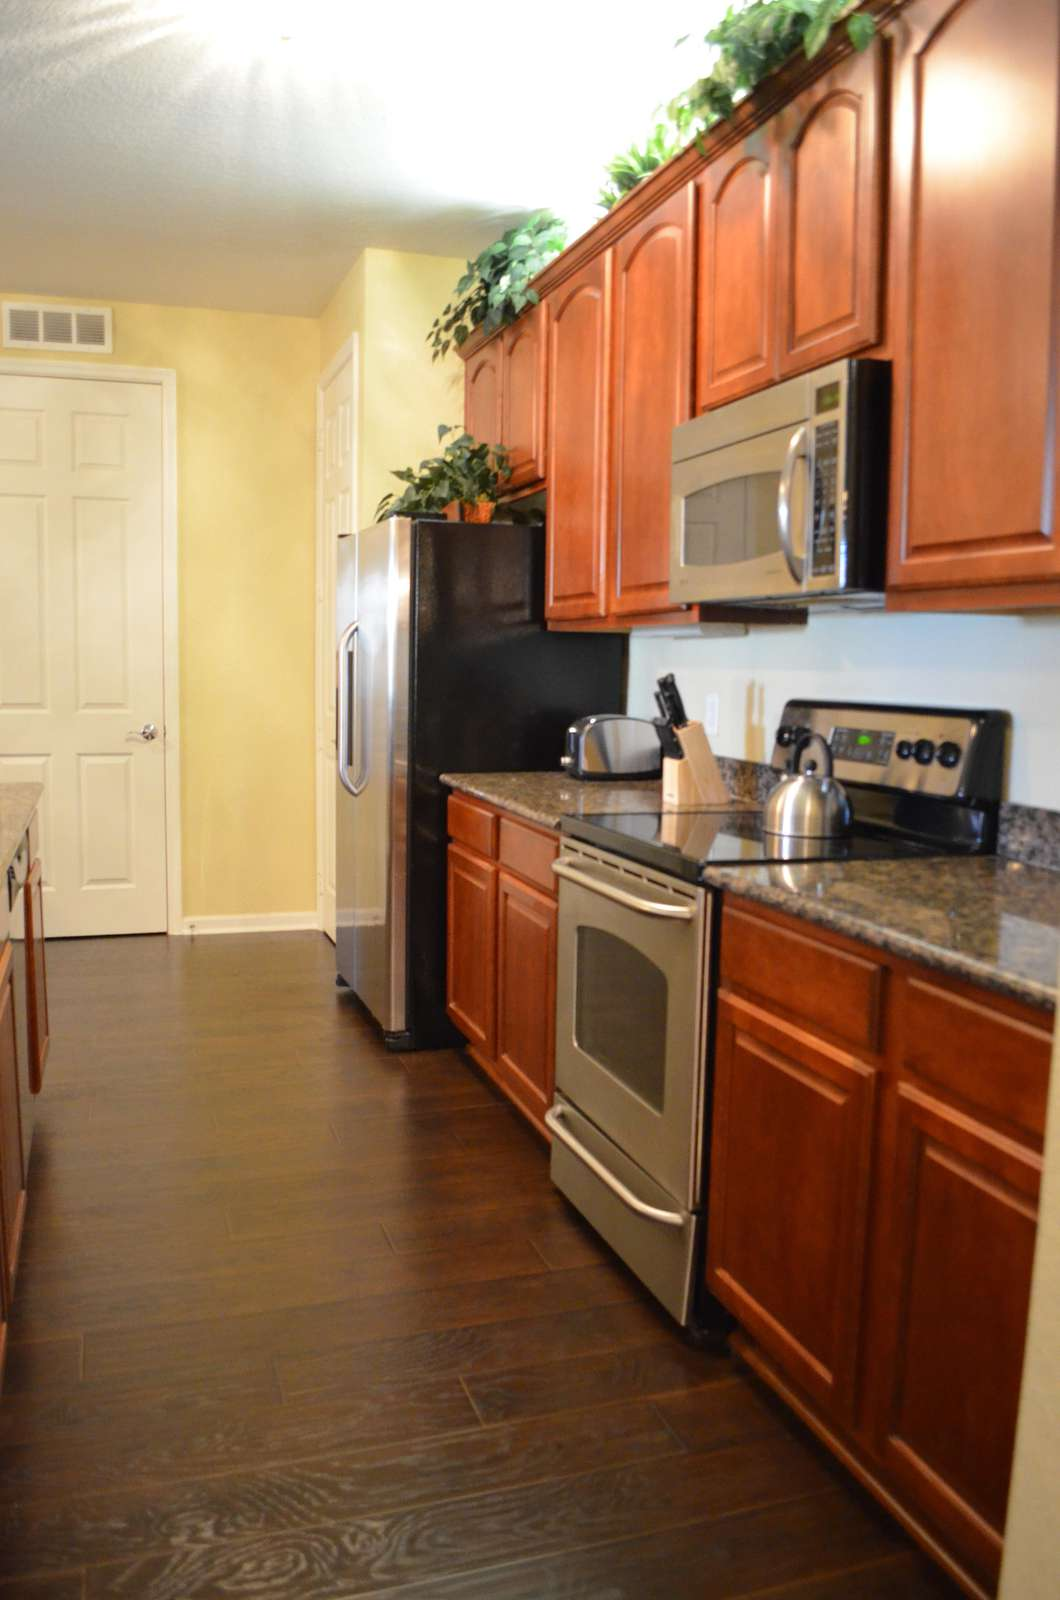 Stainless steel appliances in fully equipped kitchen